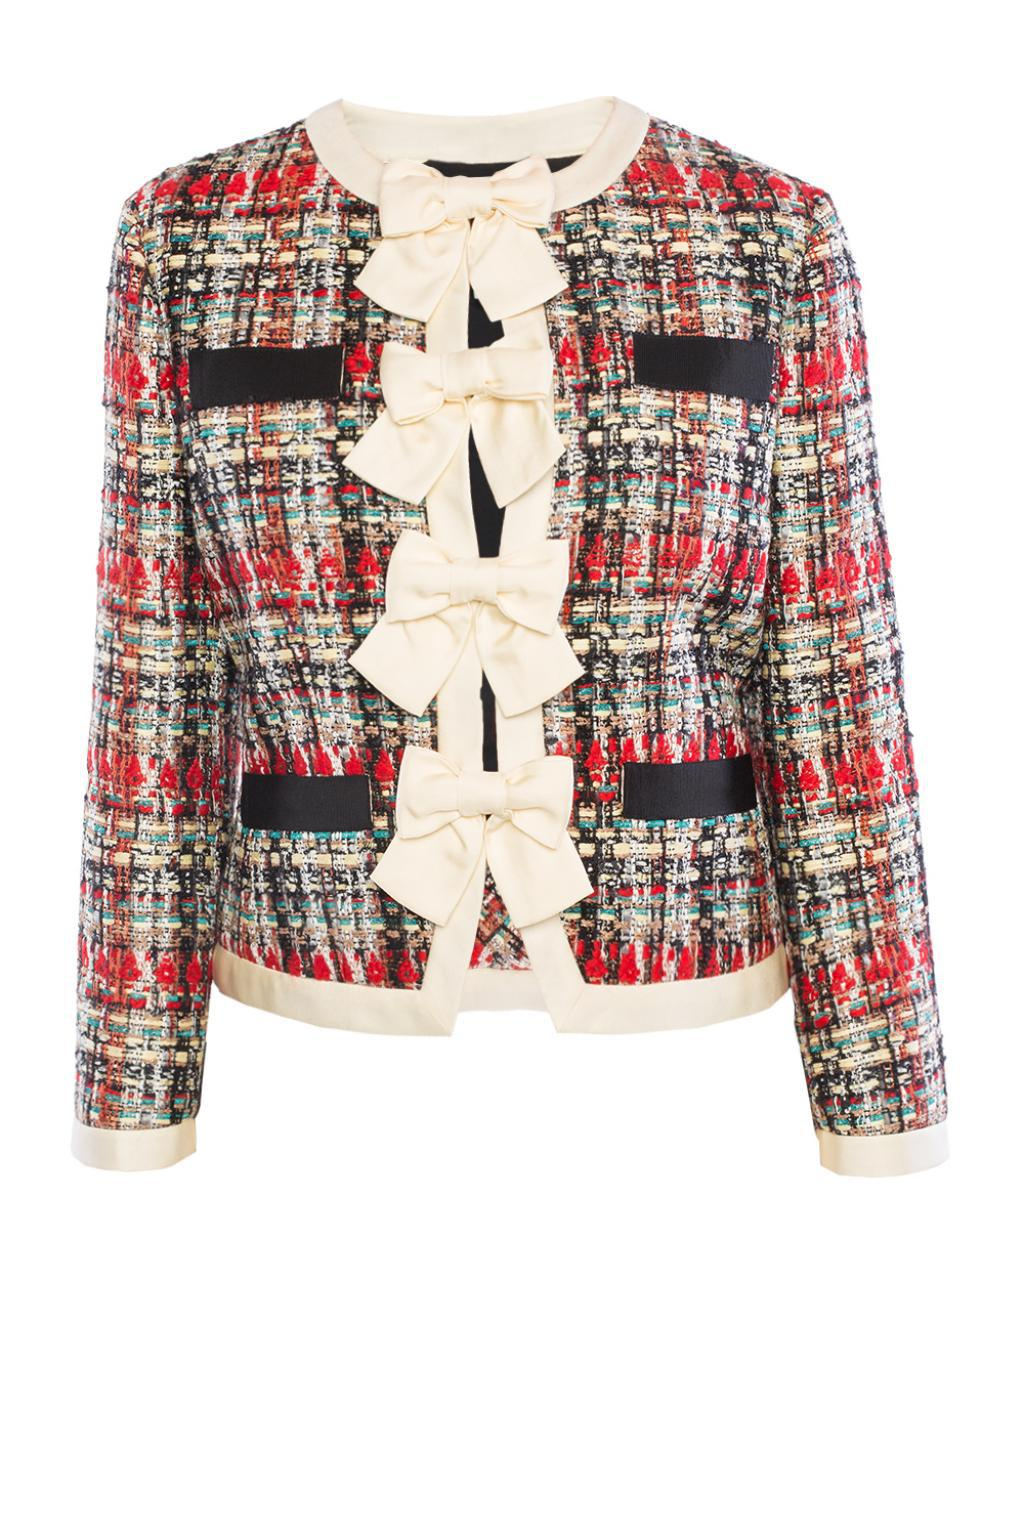 283a35c95 Gucci Tweed Jacket With Bows in Red - Lyst